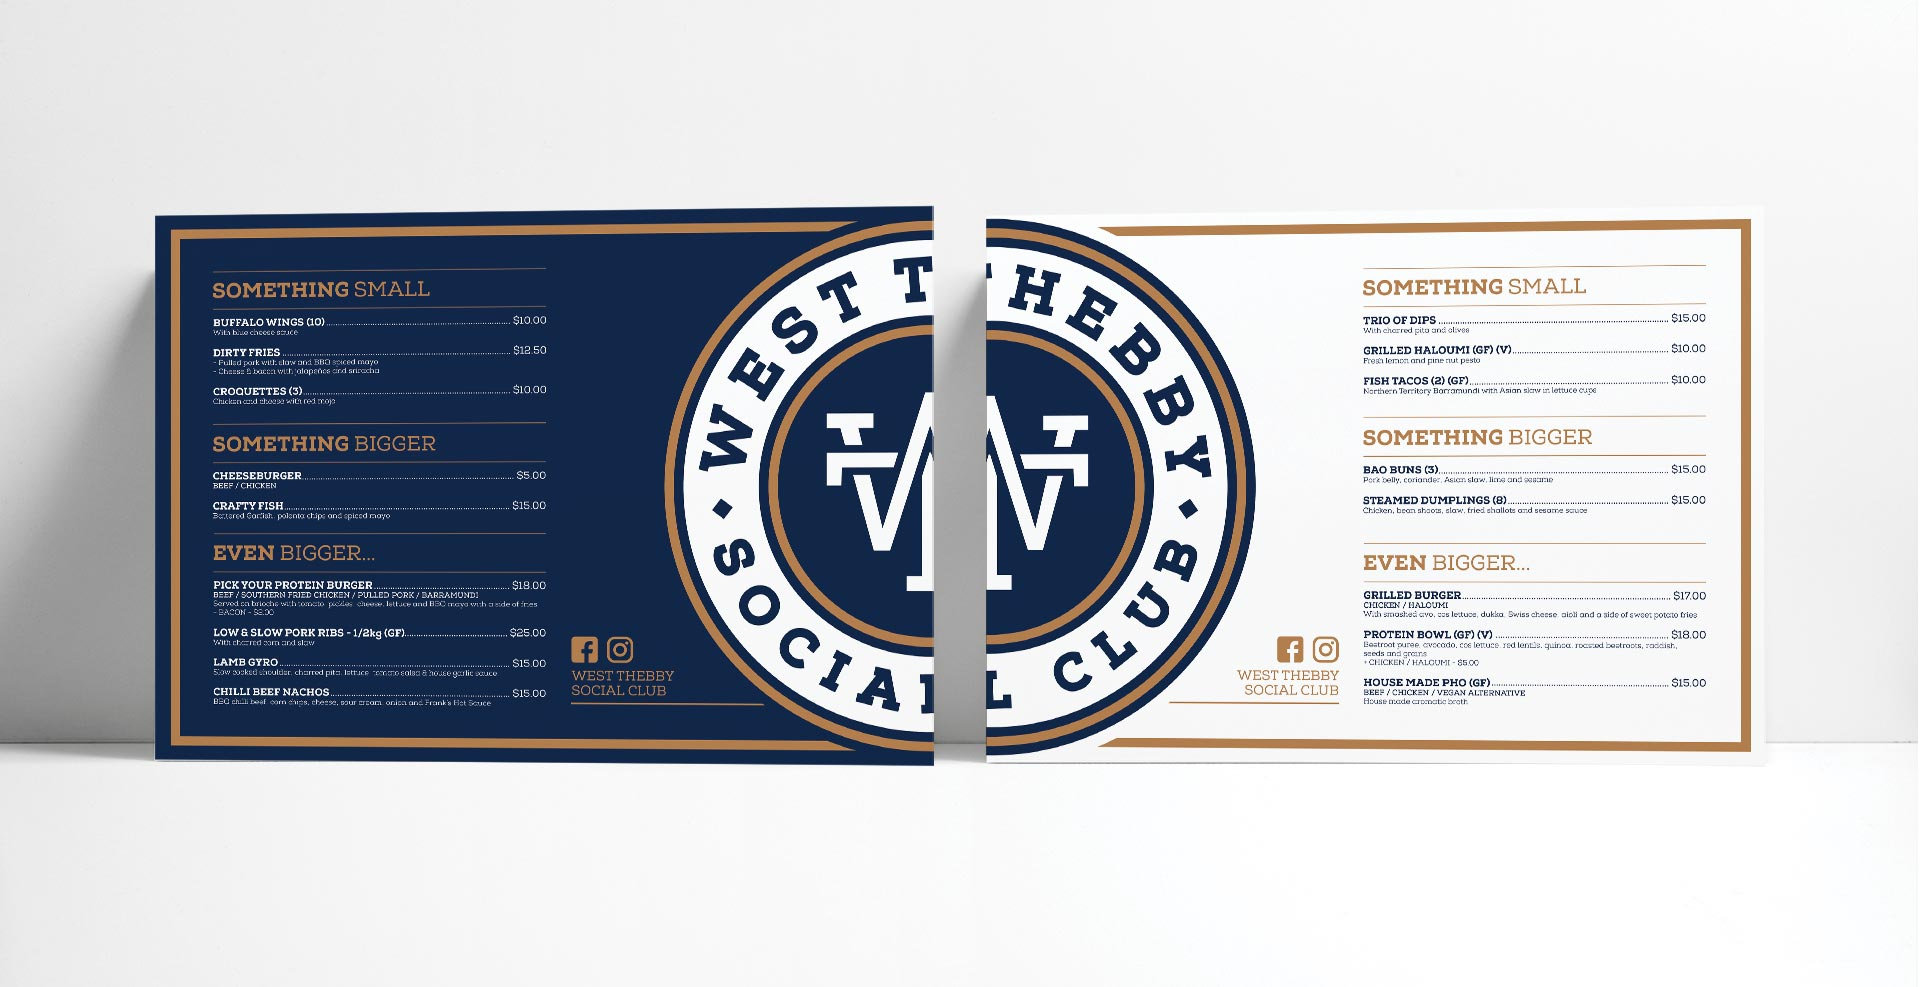 West Thebby Social Club Menu Design